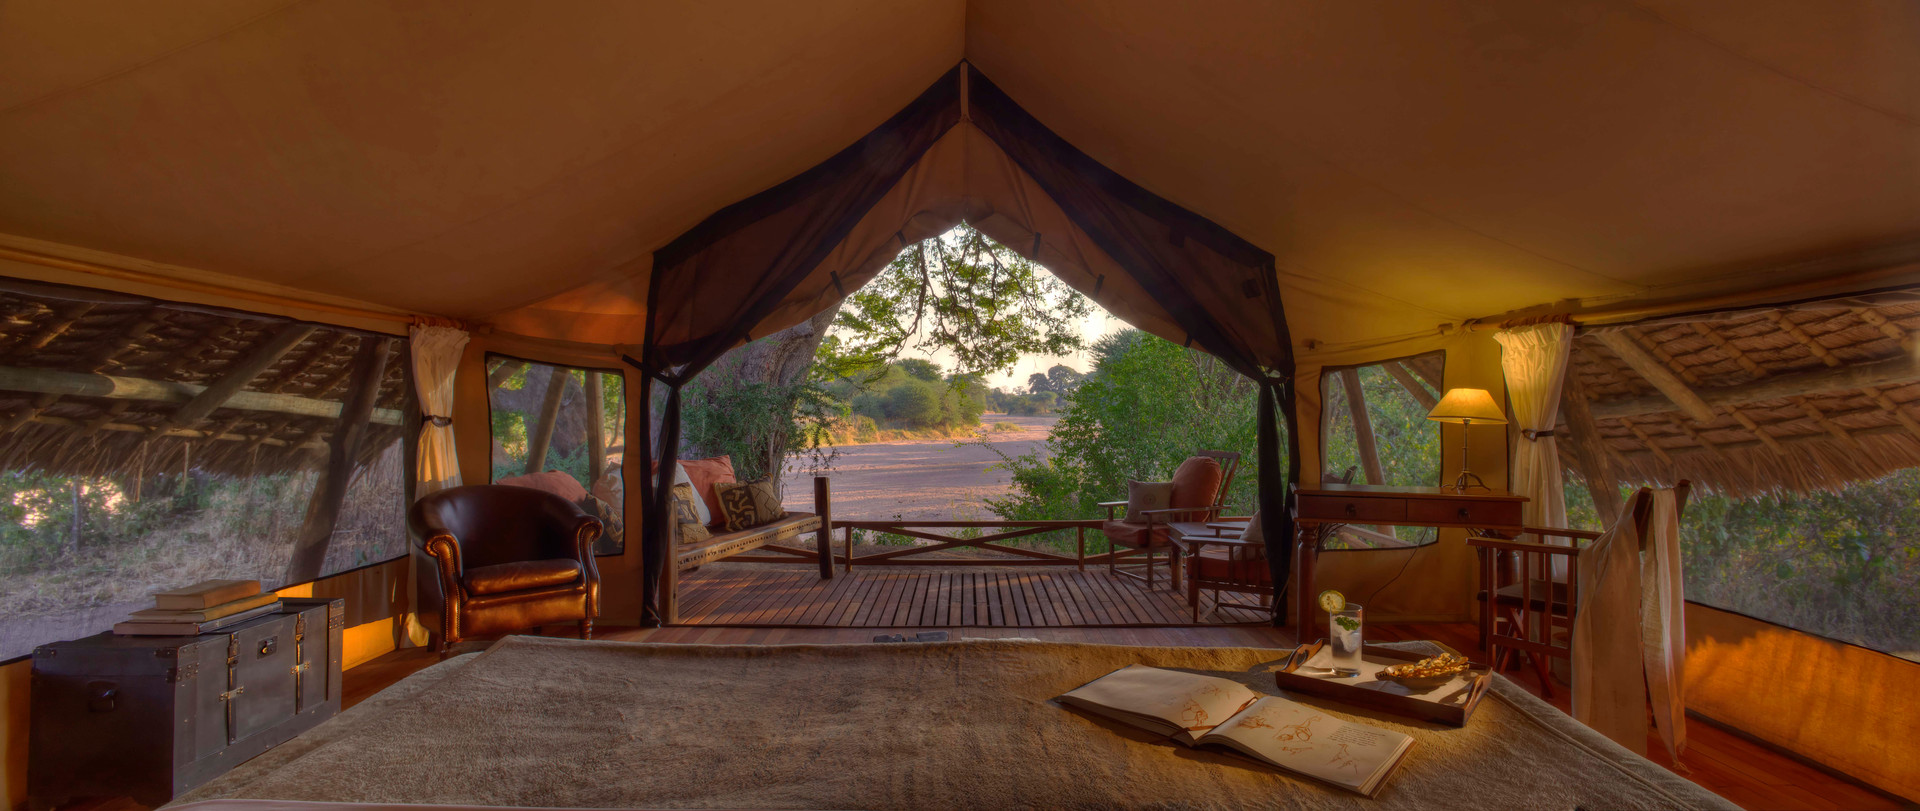 Wake up to this glorious view at Jongomero, Ruaha